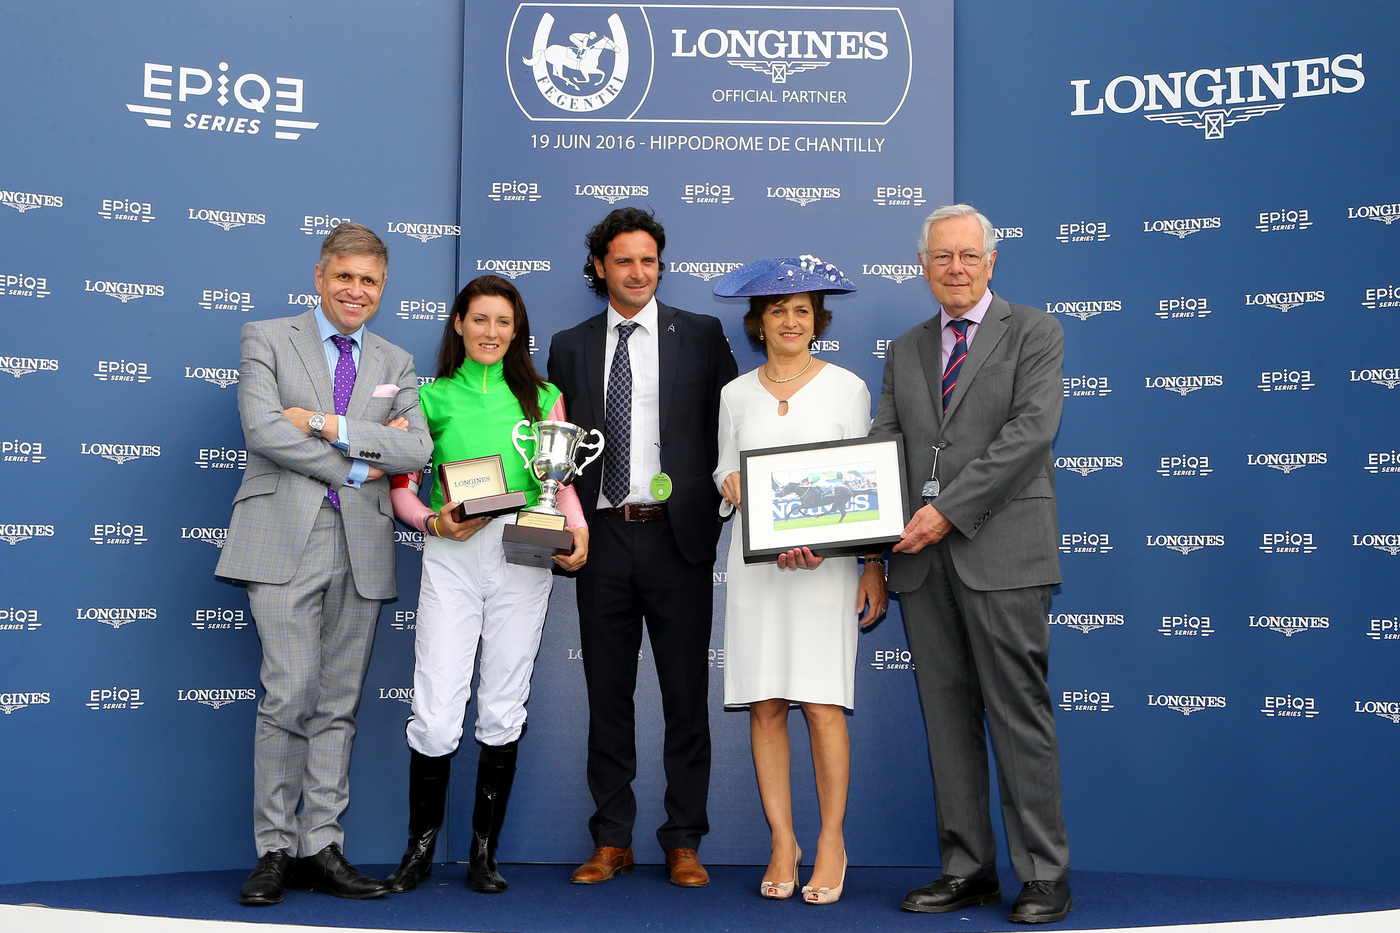 Longines Flat Racing Event: La Cressonnière is 2016 Prix de Diane Longines champion 11